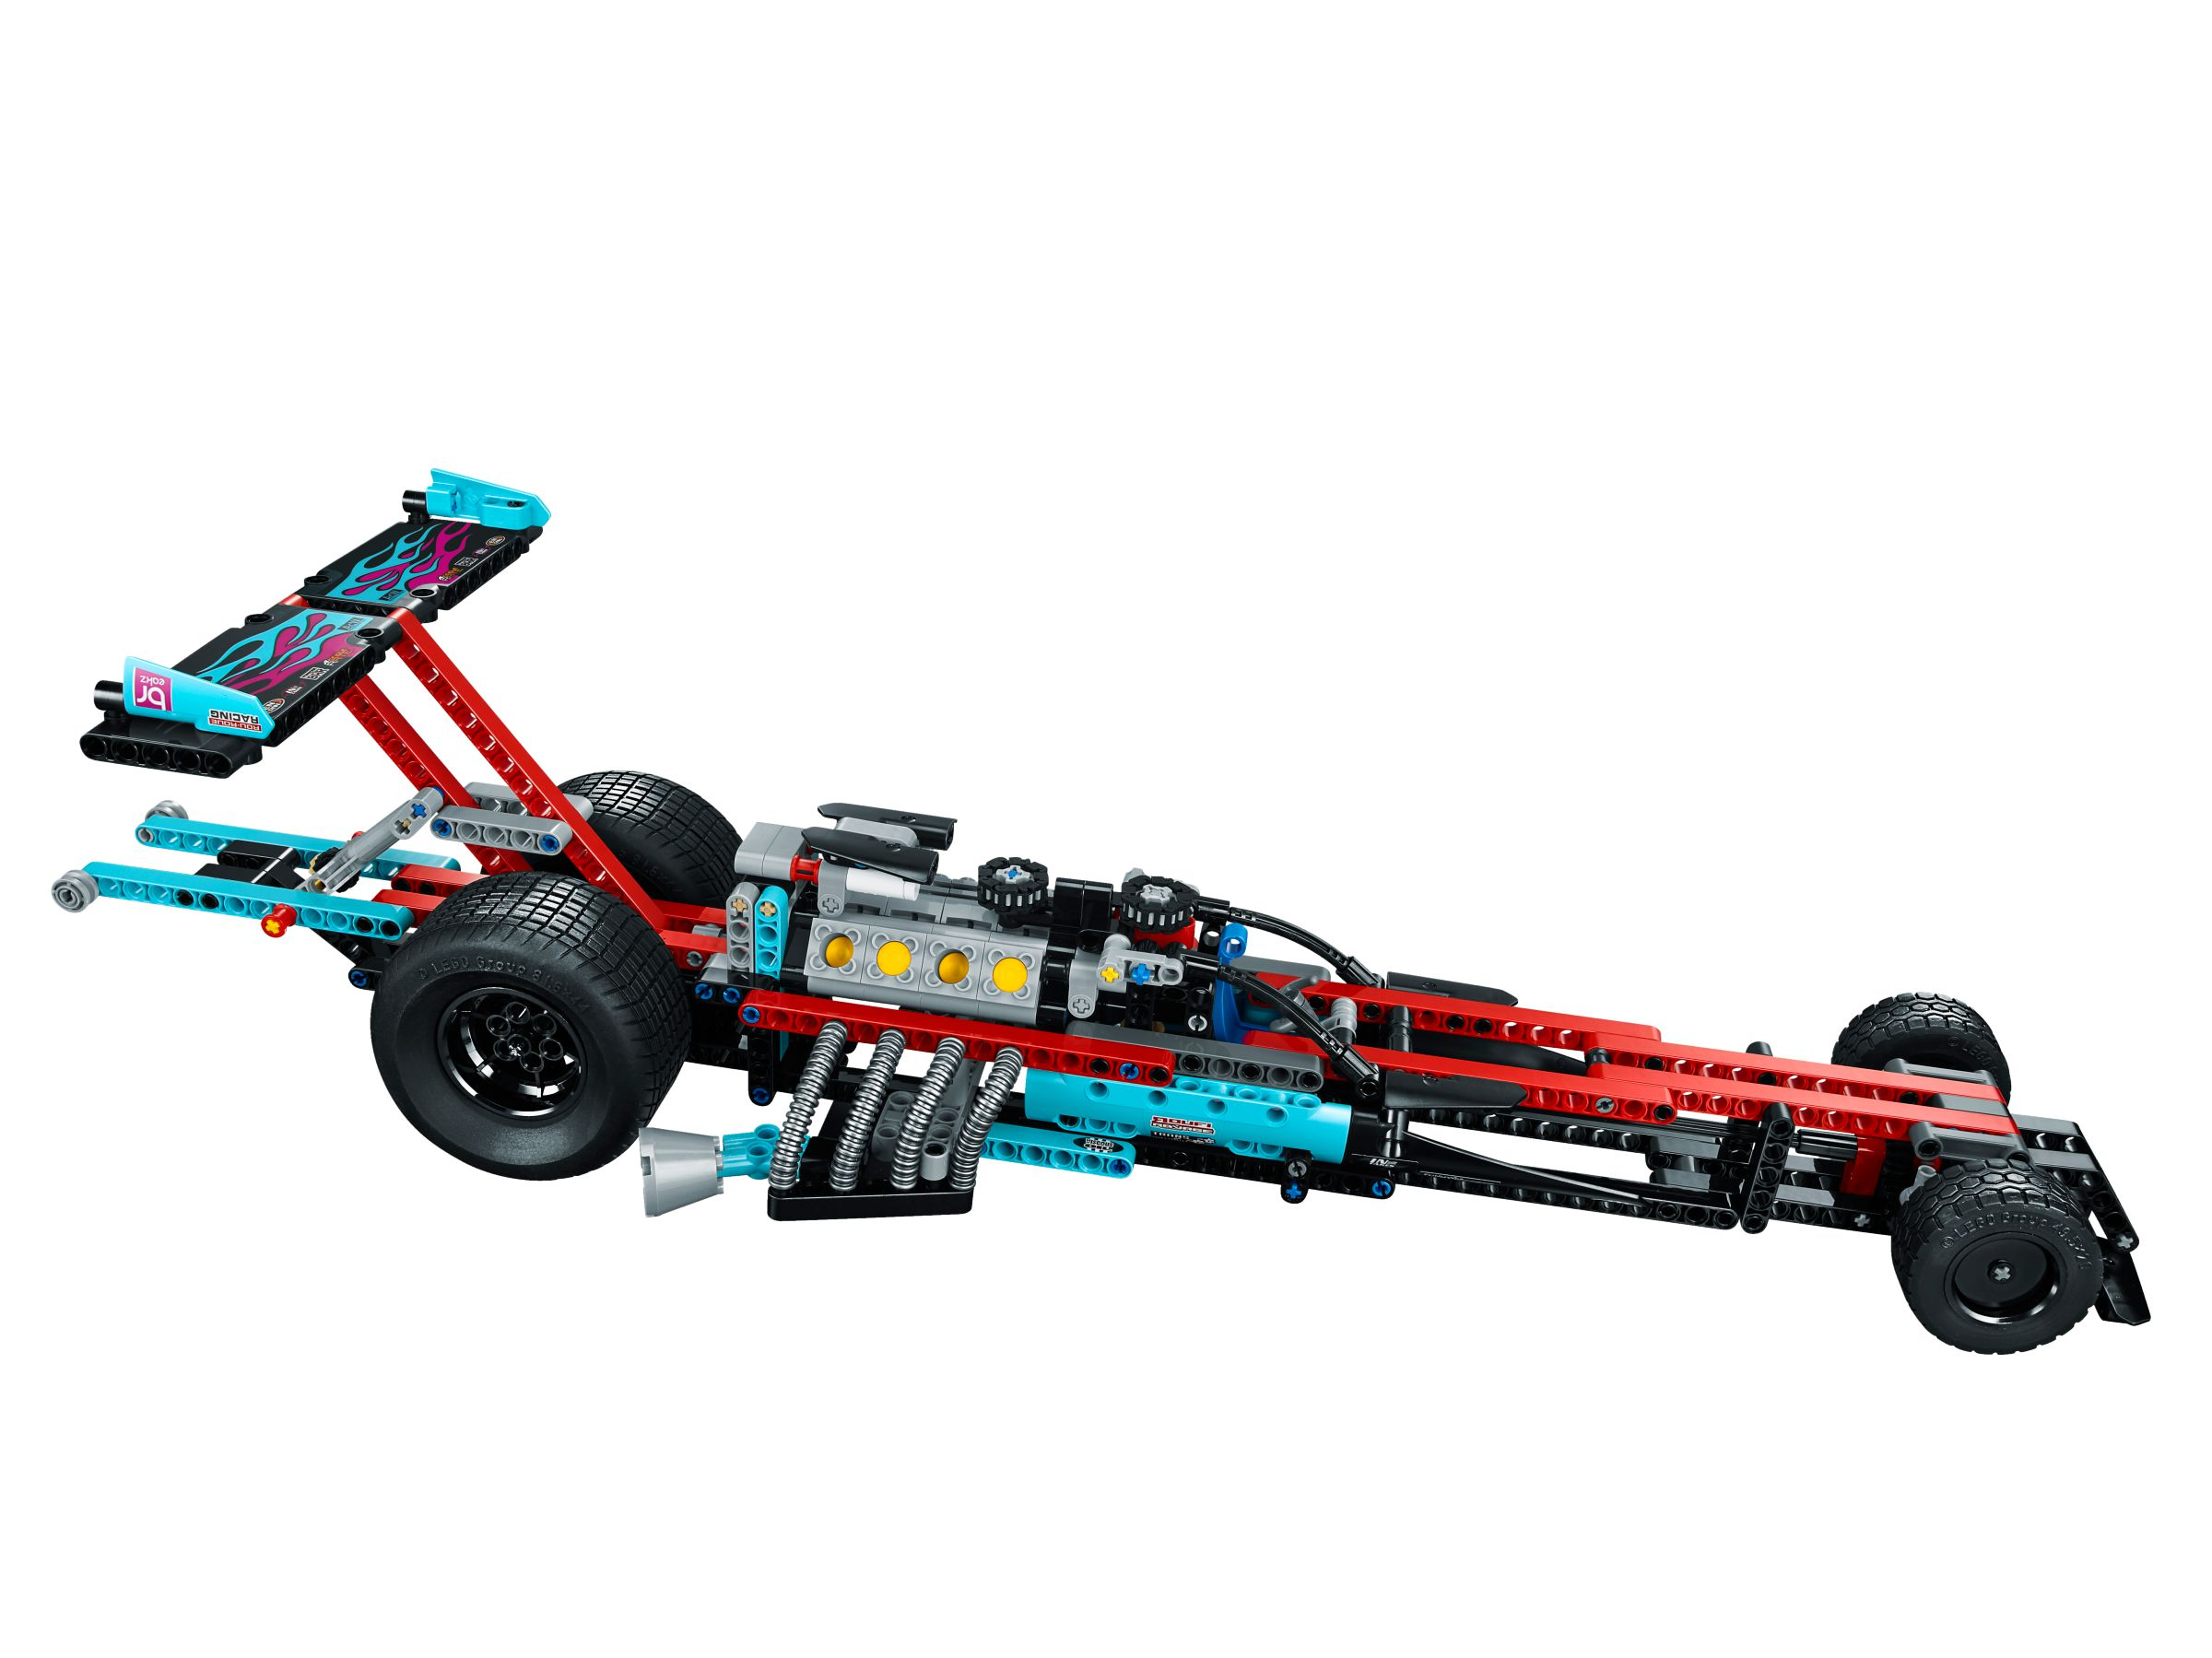 drag racer 42050 lego technic 2016 im preisvergleich. Black Bedroom Furniture Sets. Home Design Ideas